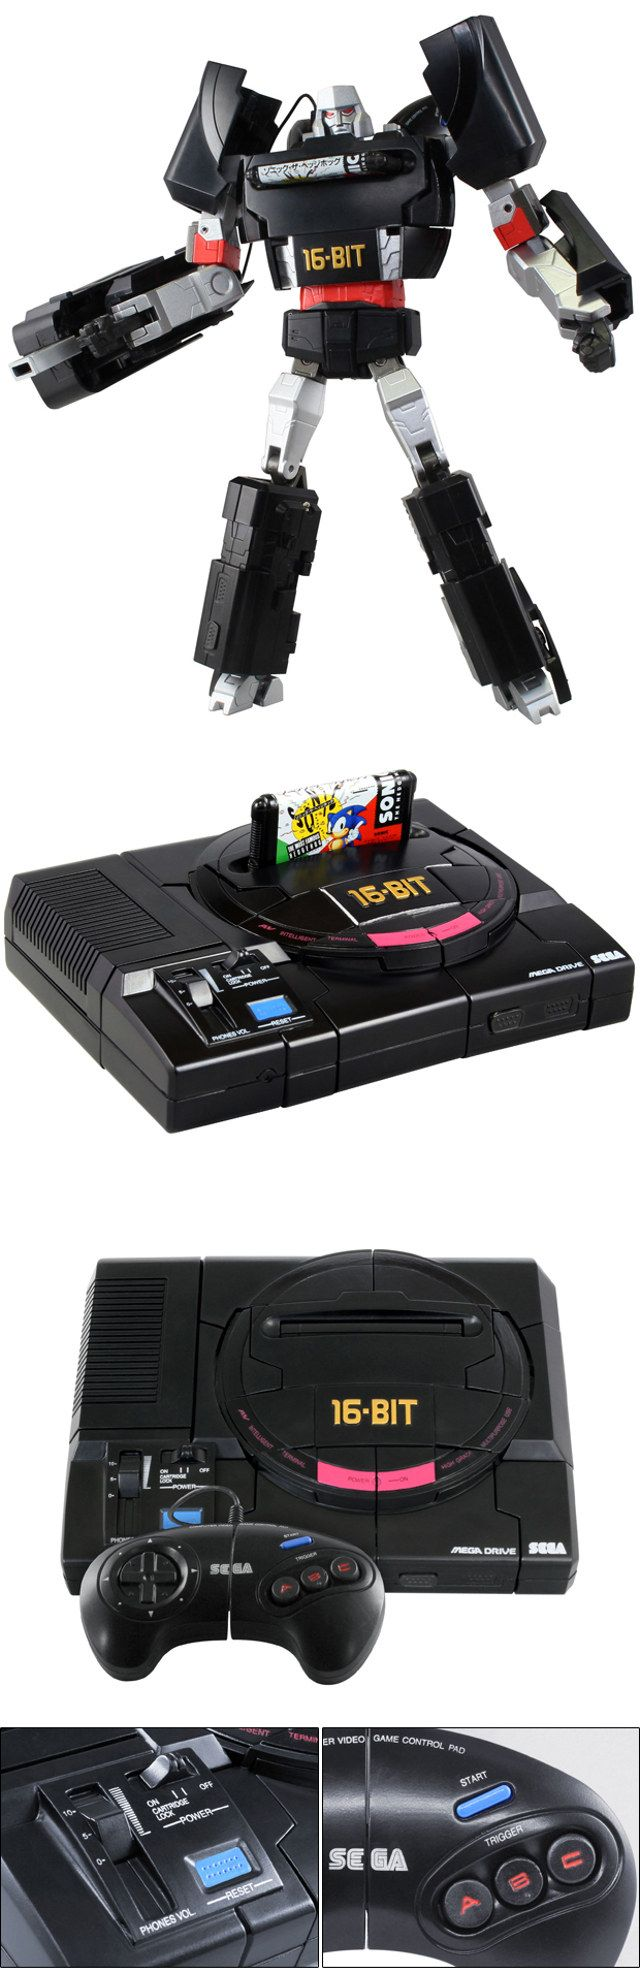 Sony Playstation And Sega Megadrive Console Transformers | Geekologie